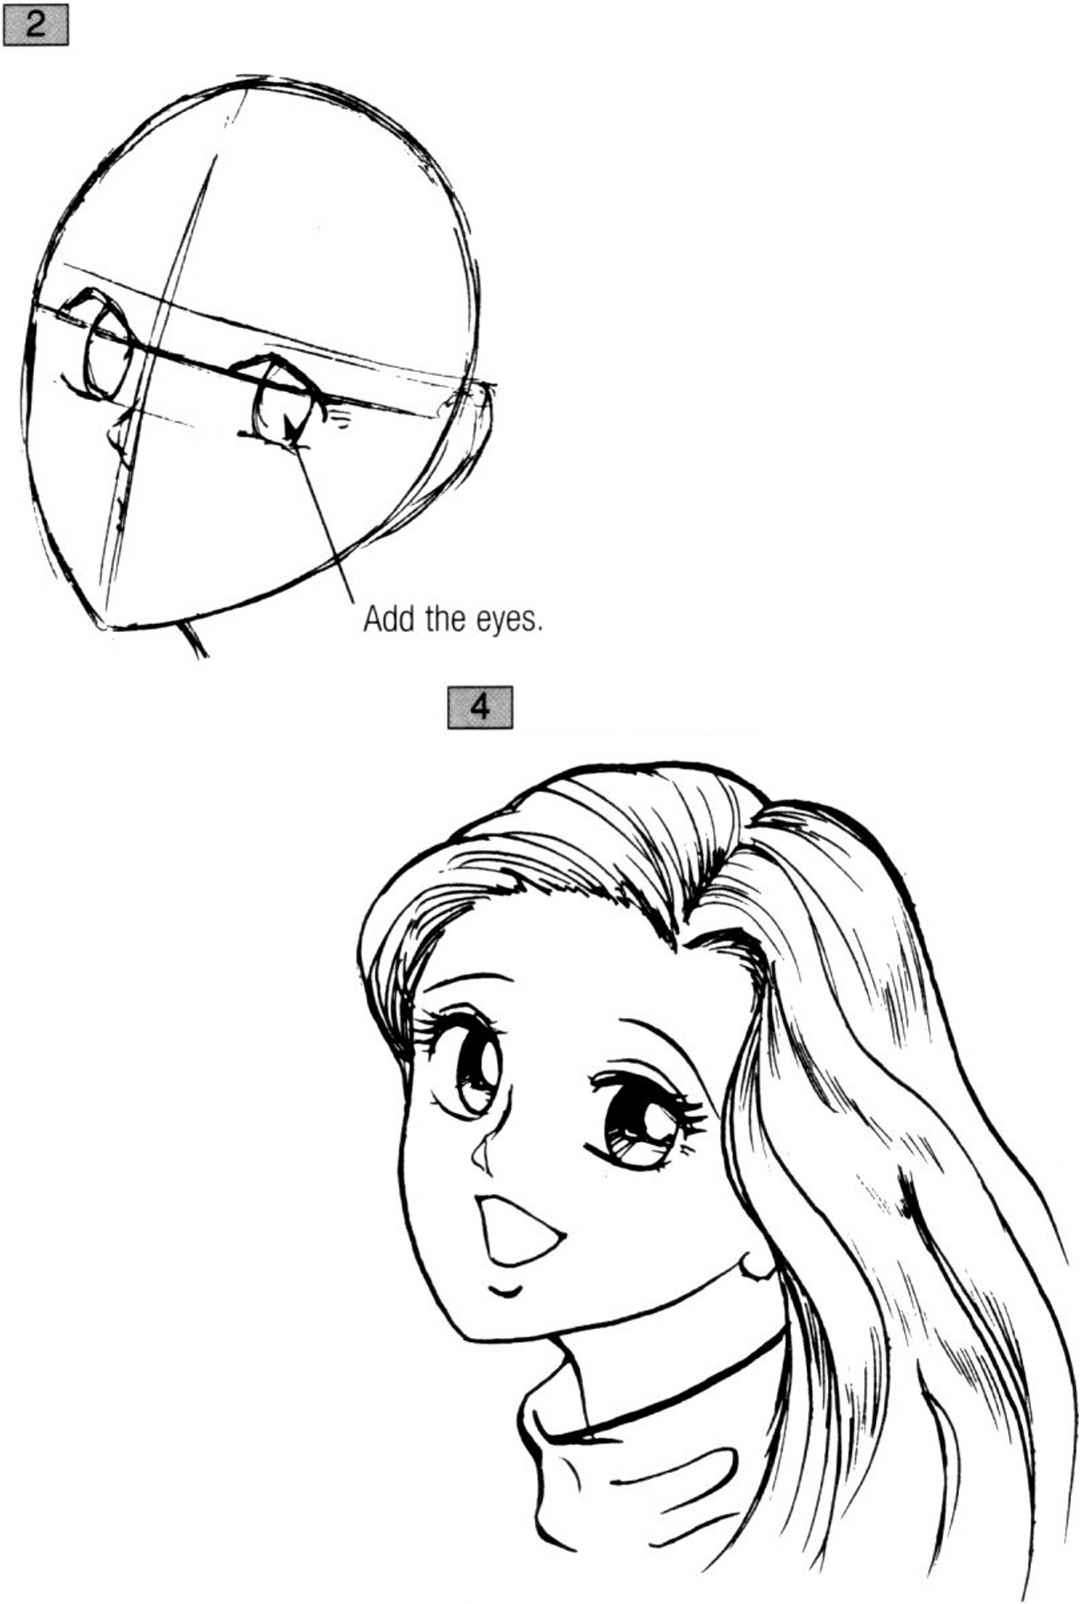 Anime Body Template With Eyes